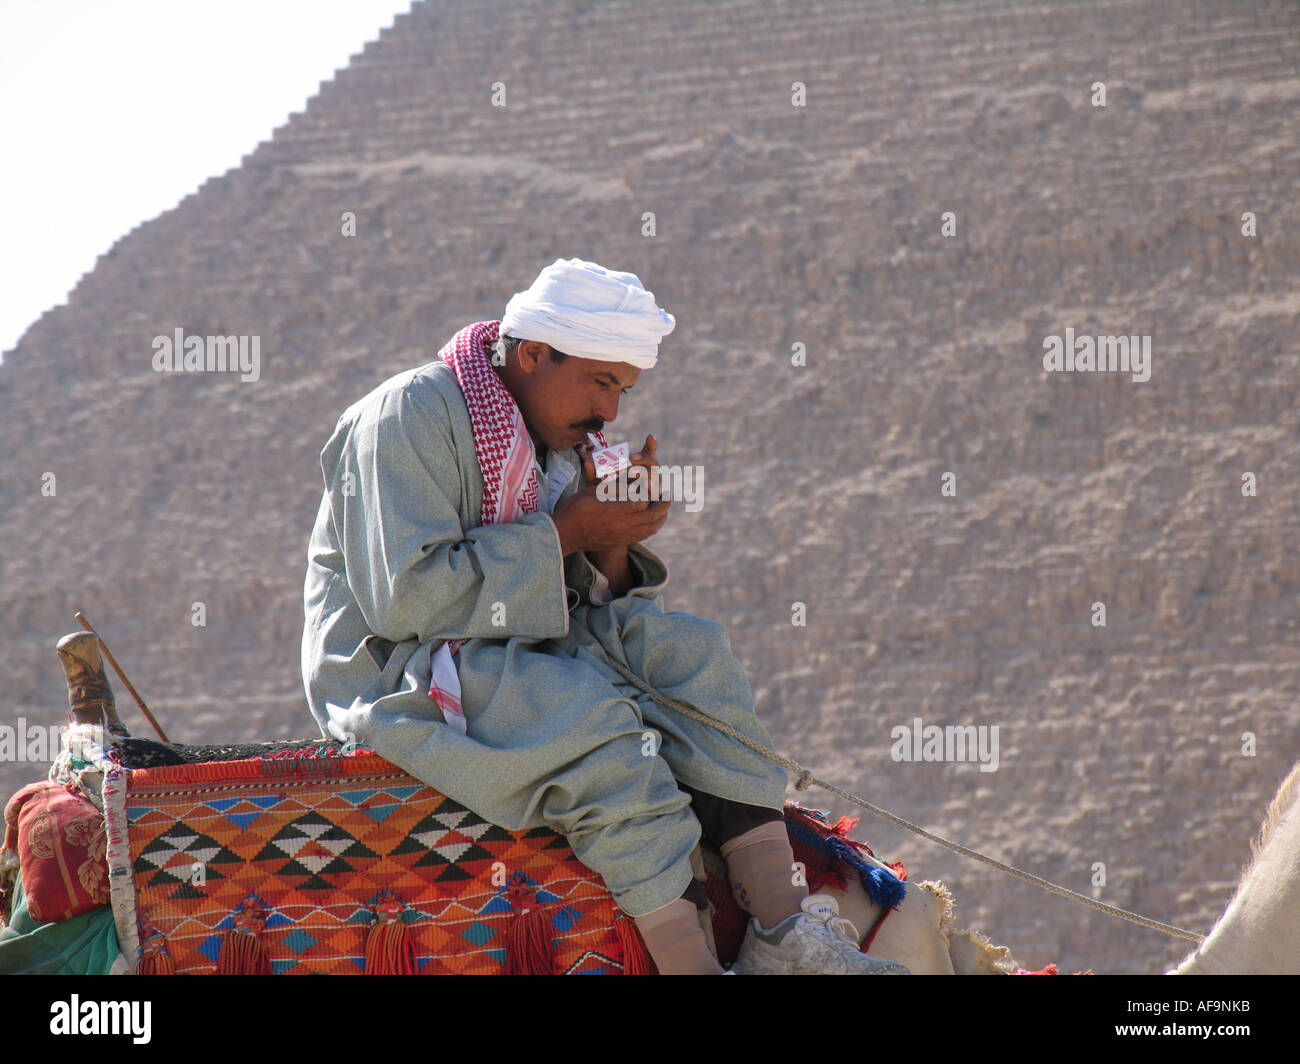 Egyptian man sitting on a camel in front of a pyramid in Giza, lighting up a cigarette, Egypt, Kairo, Giza, Gizeh, Giseh - Stock Image